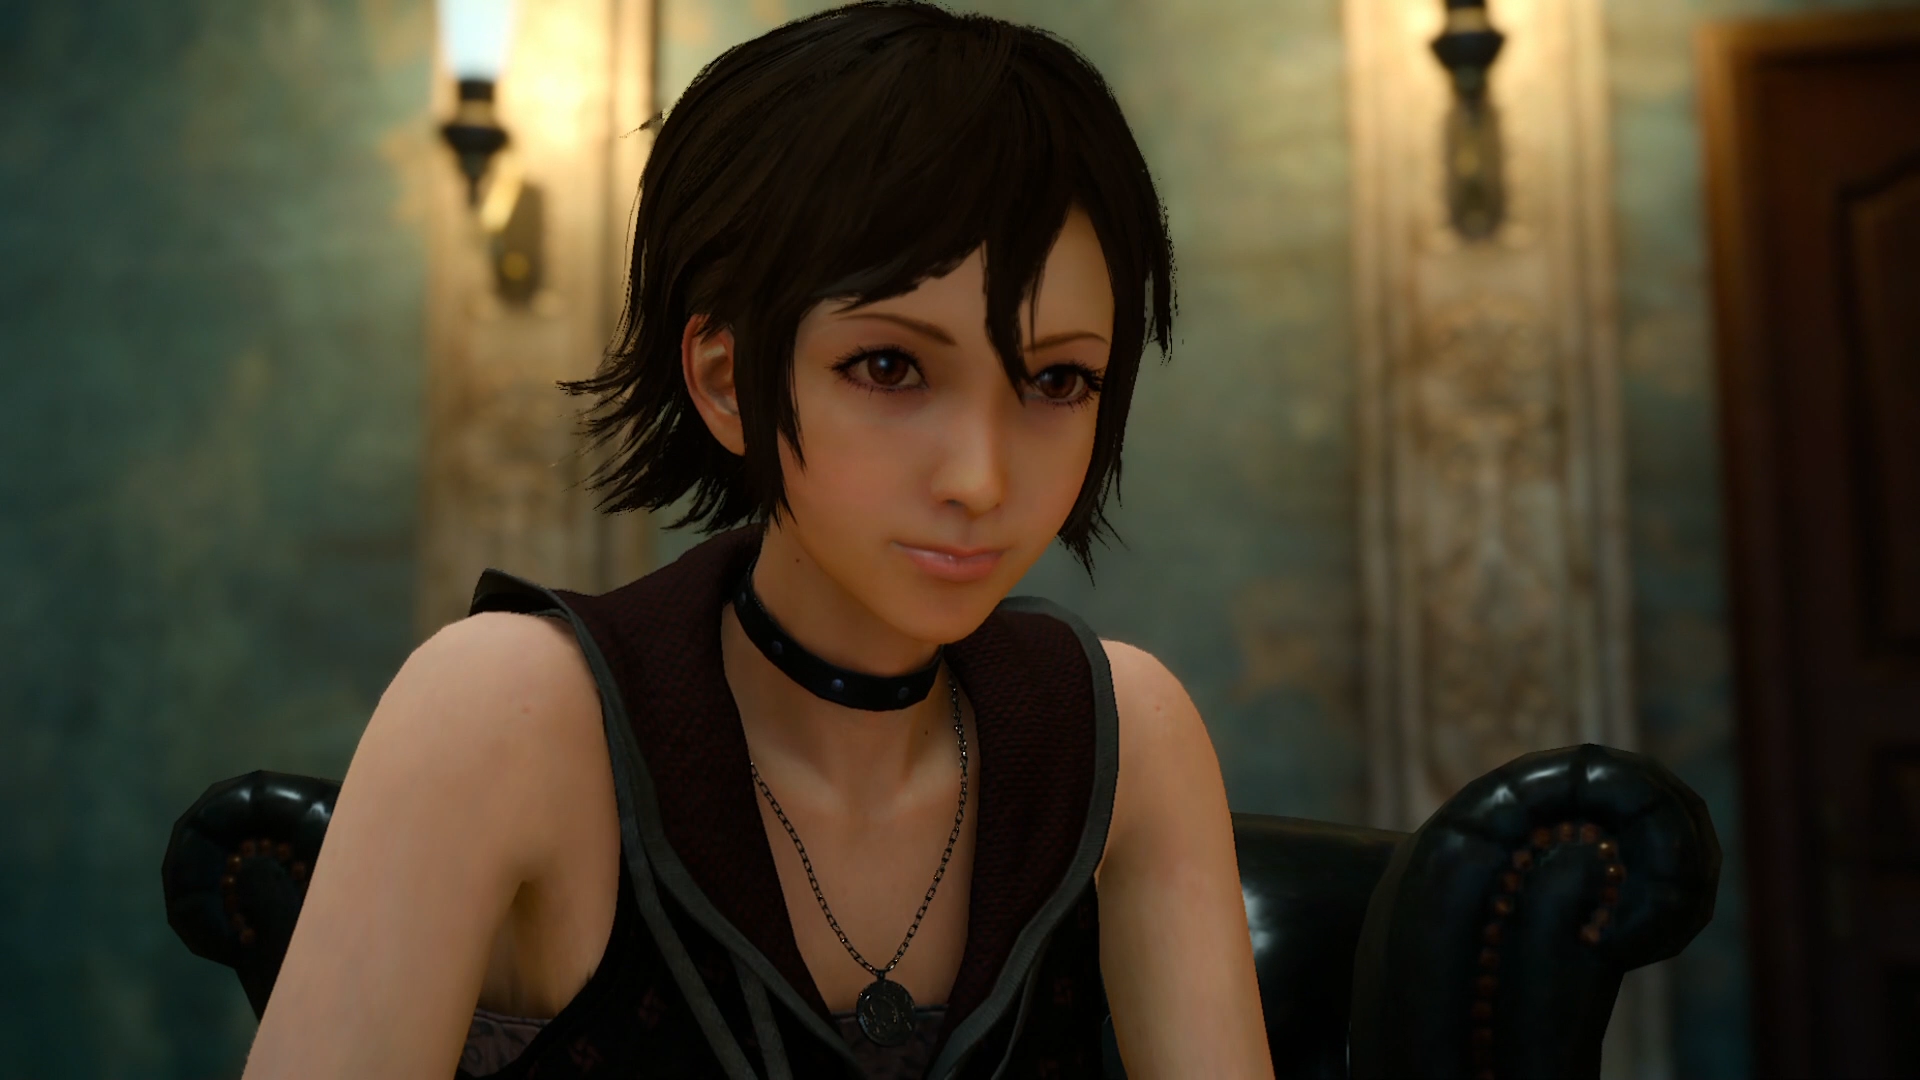 Final Fantasy Xv Previews New Cg Renders For Cor Iris Cidney And